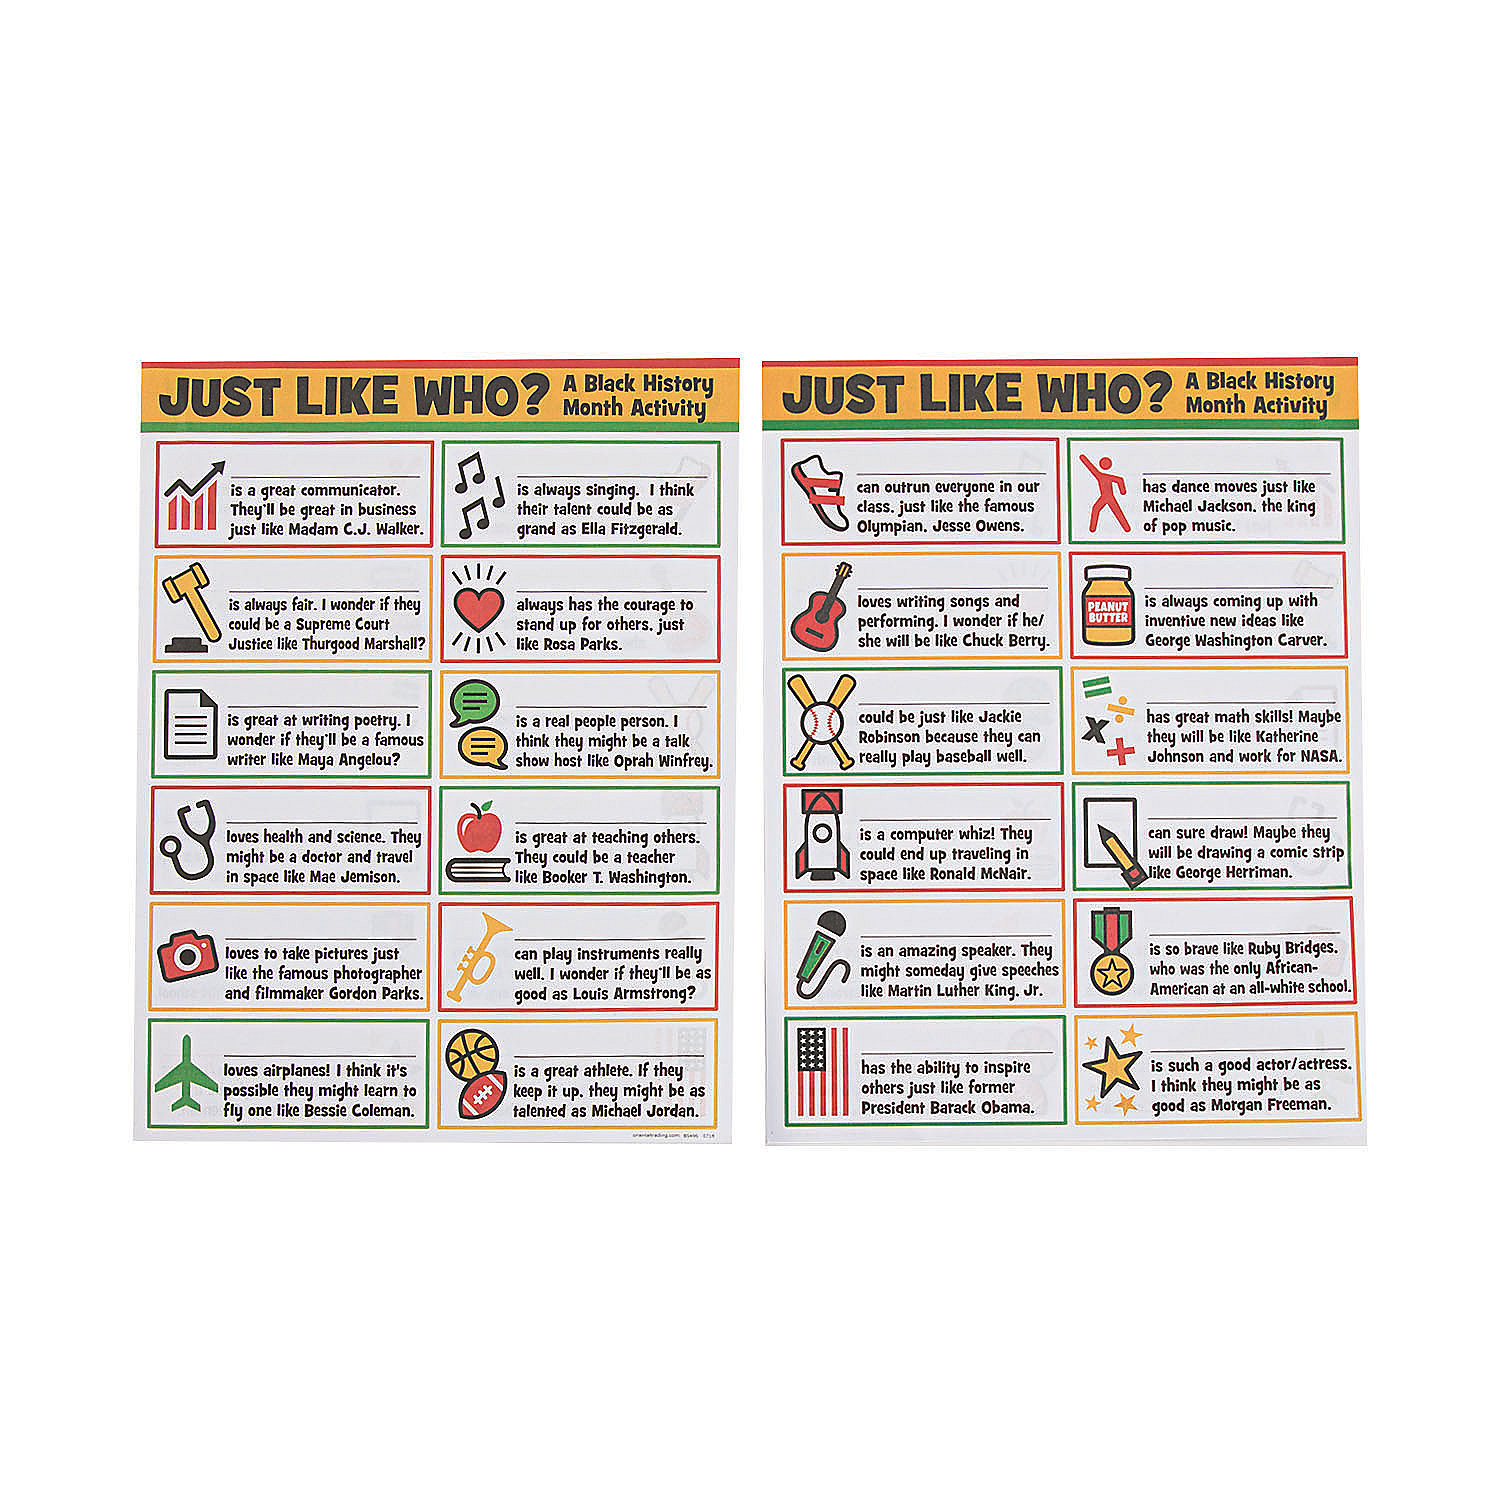 IN-13820120 Black History Month Activity Mats By Fun Express